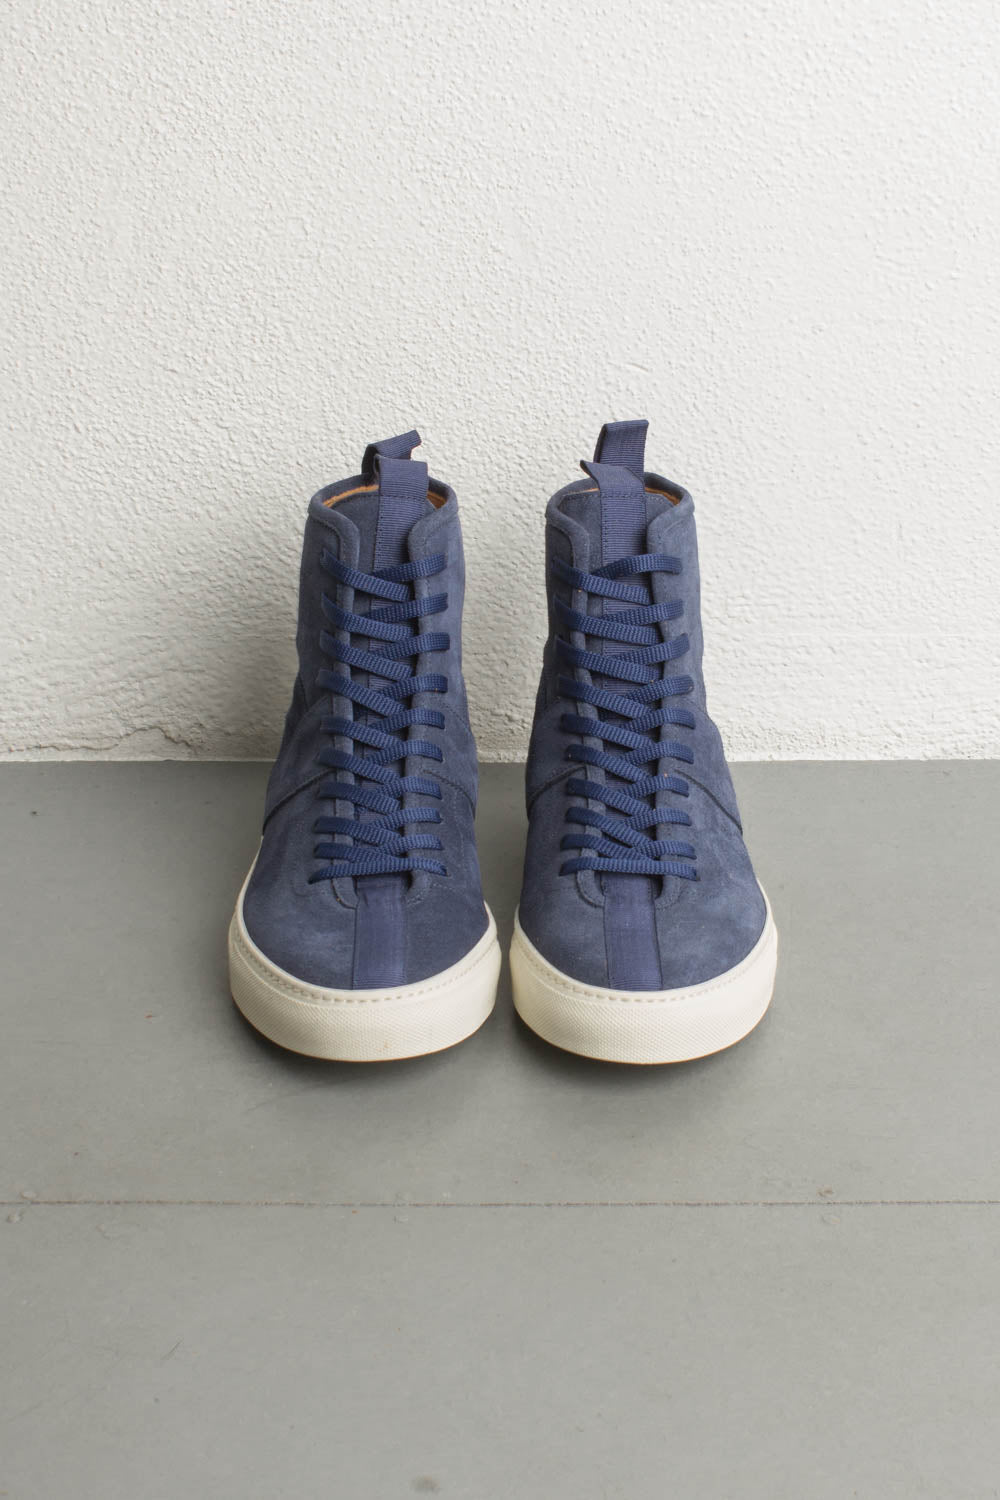 high top roamer / ink